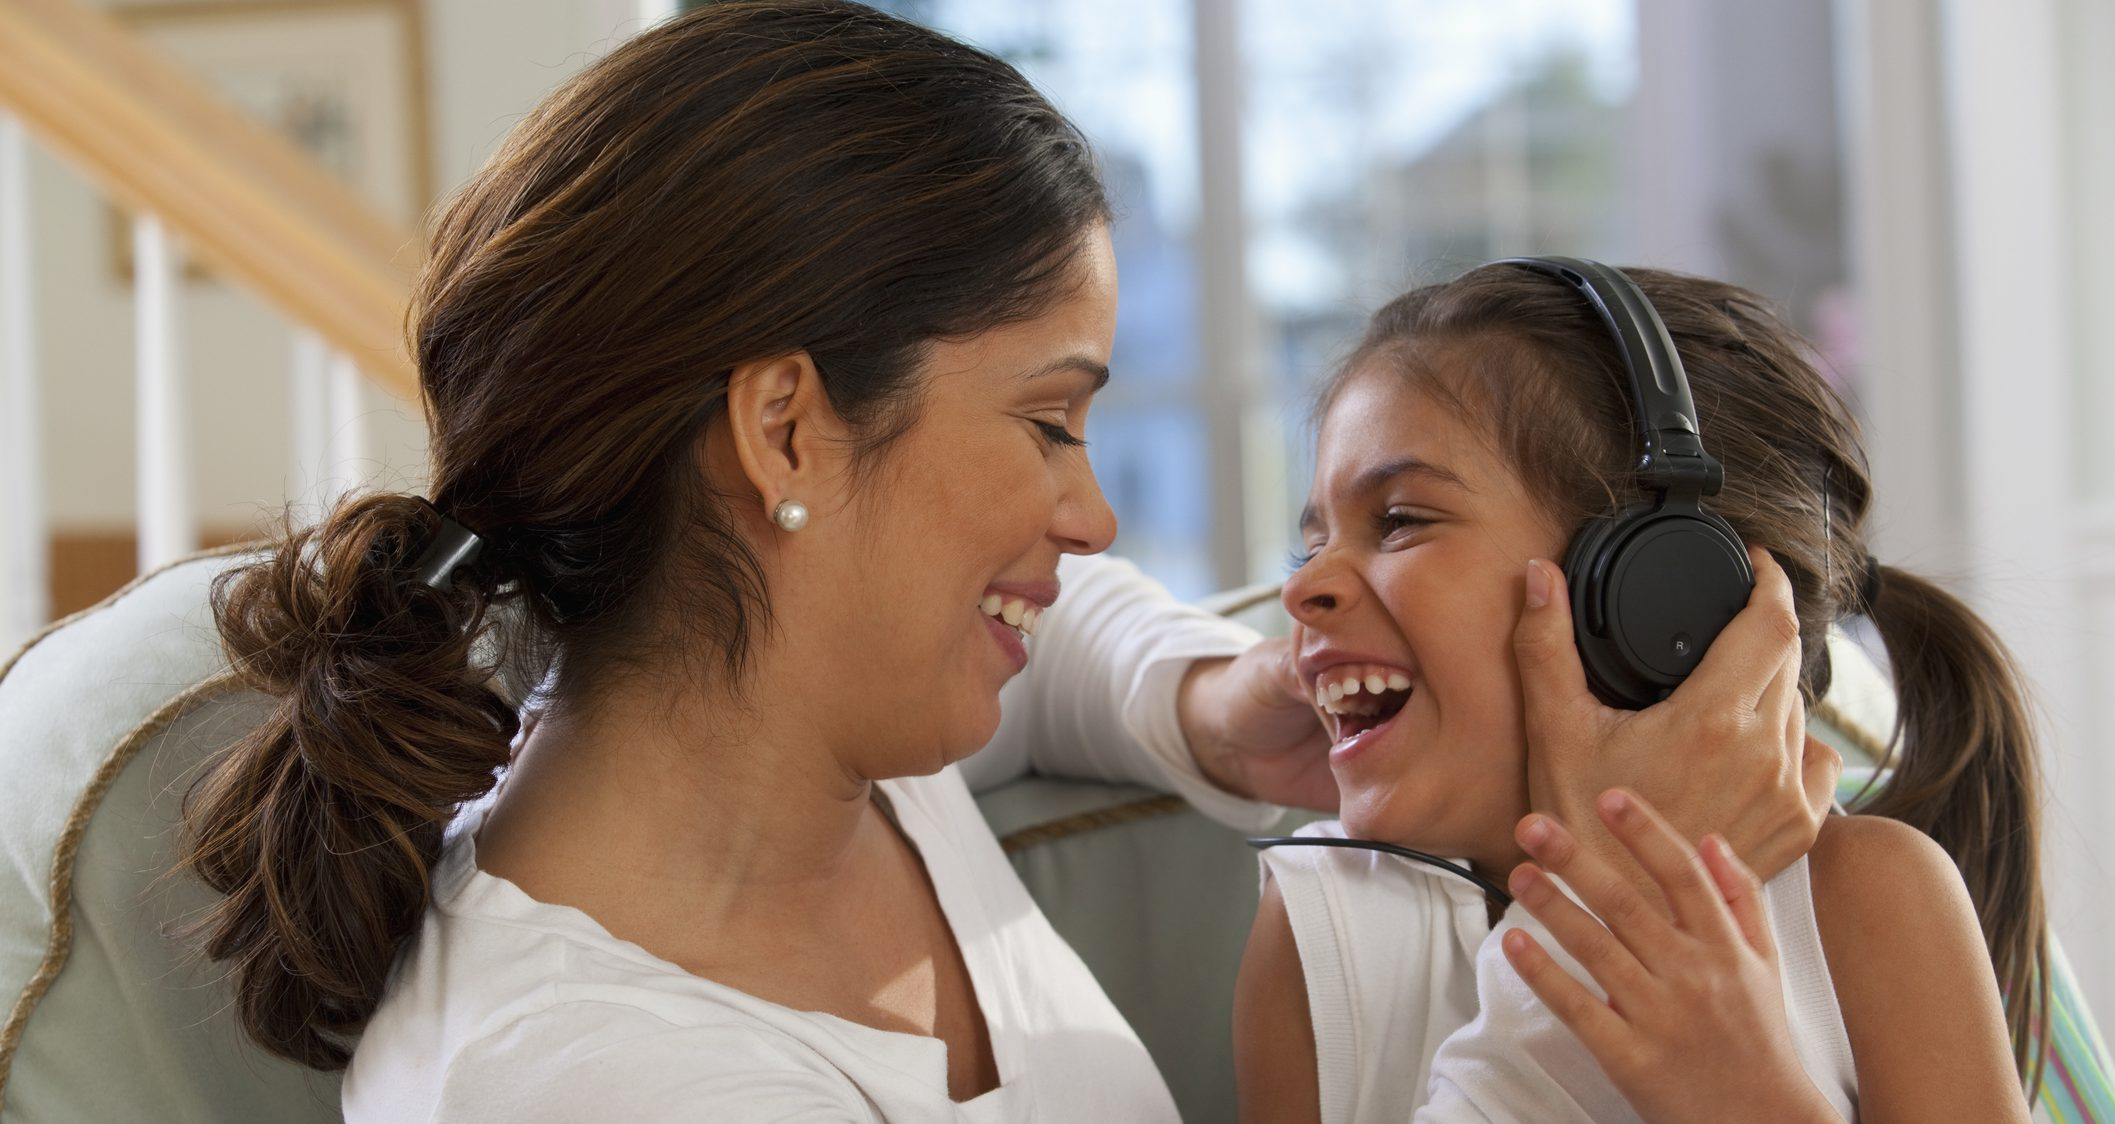 Hispanic girl sitting with her mother and listening to music